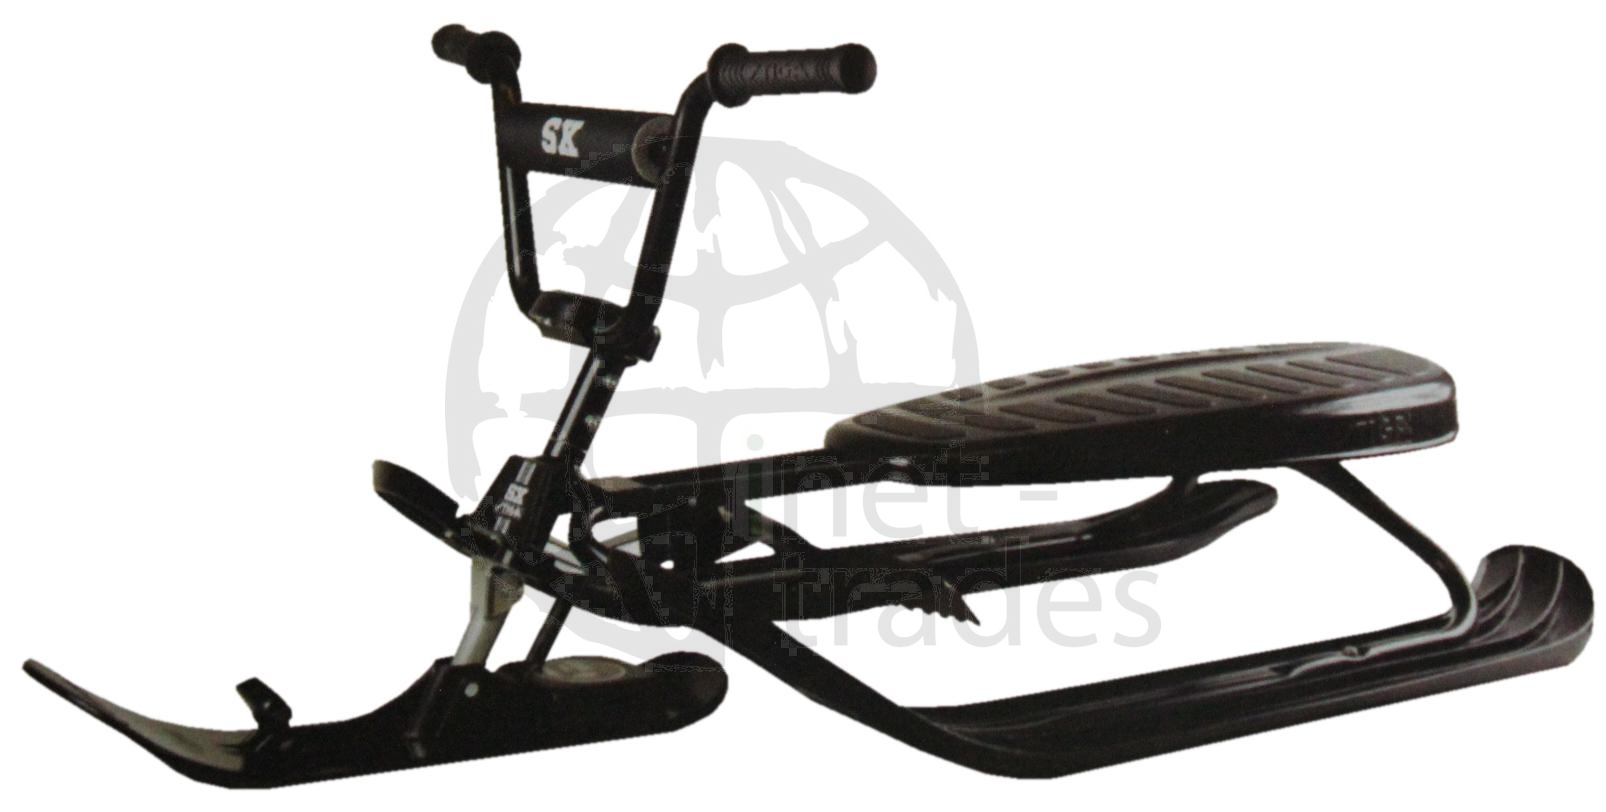 stiga lenkbob mit fahrrad lenkrad lenkschlitten bmx rodel schlitten skibob bob ebay. Black Bedroom Furniture Sets. Home Design Ideas